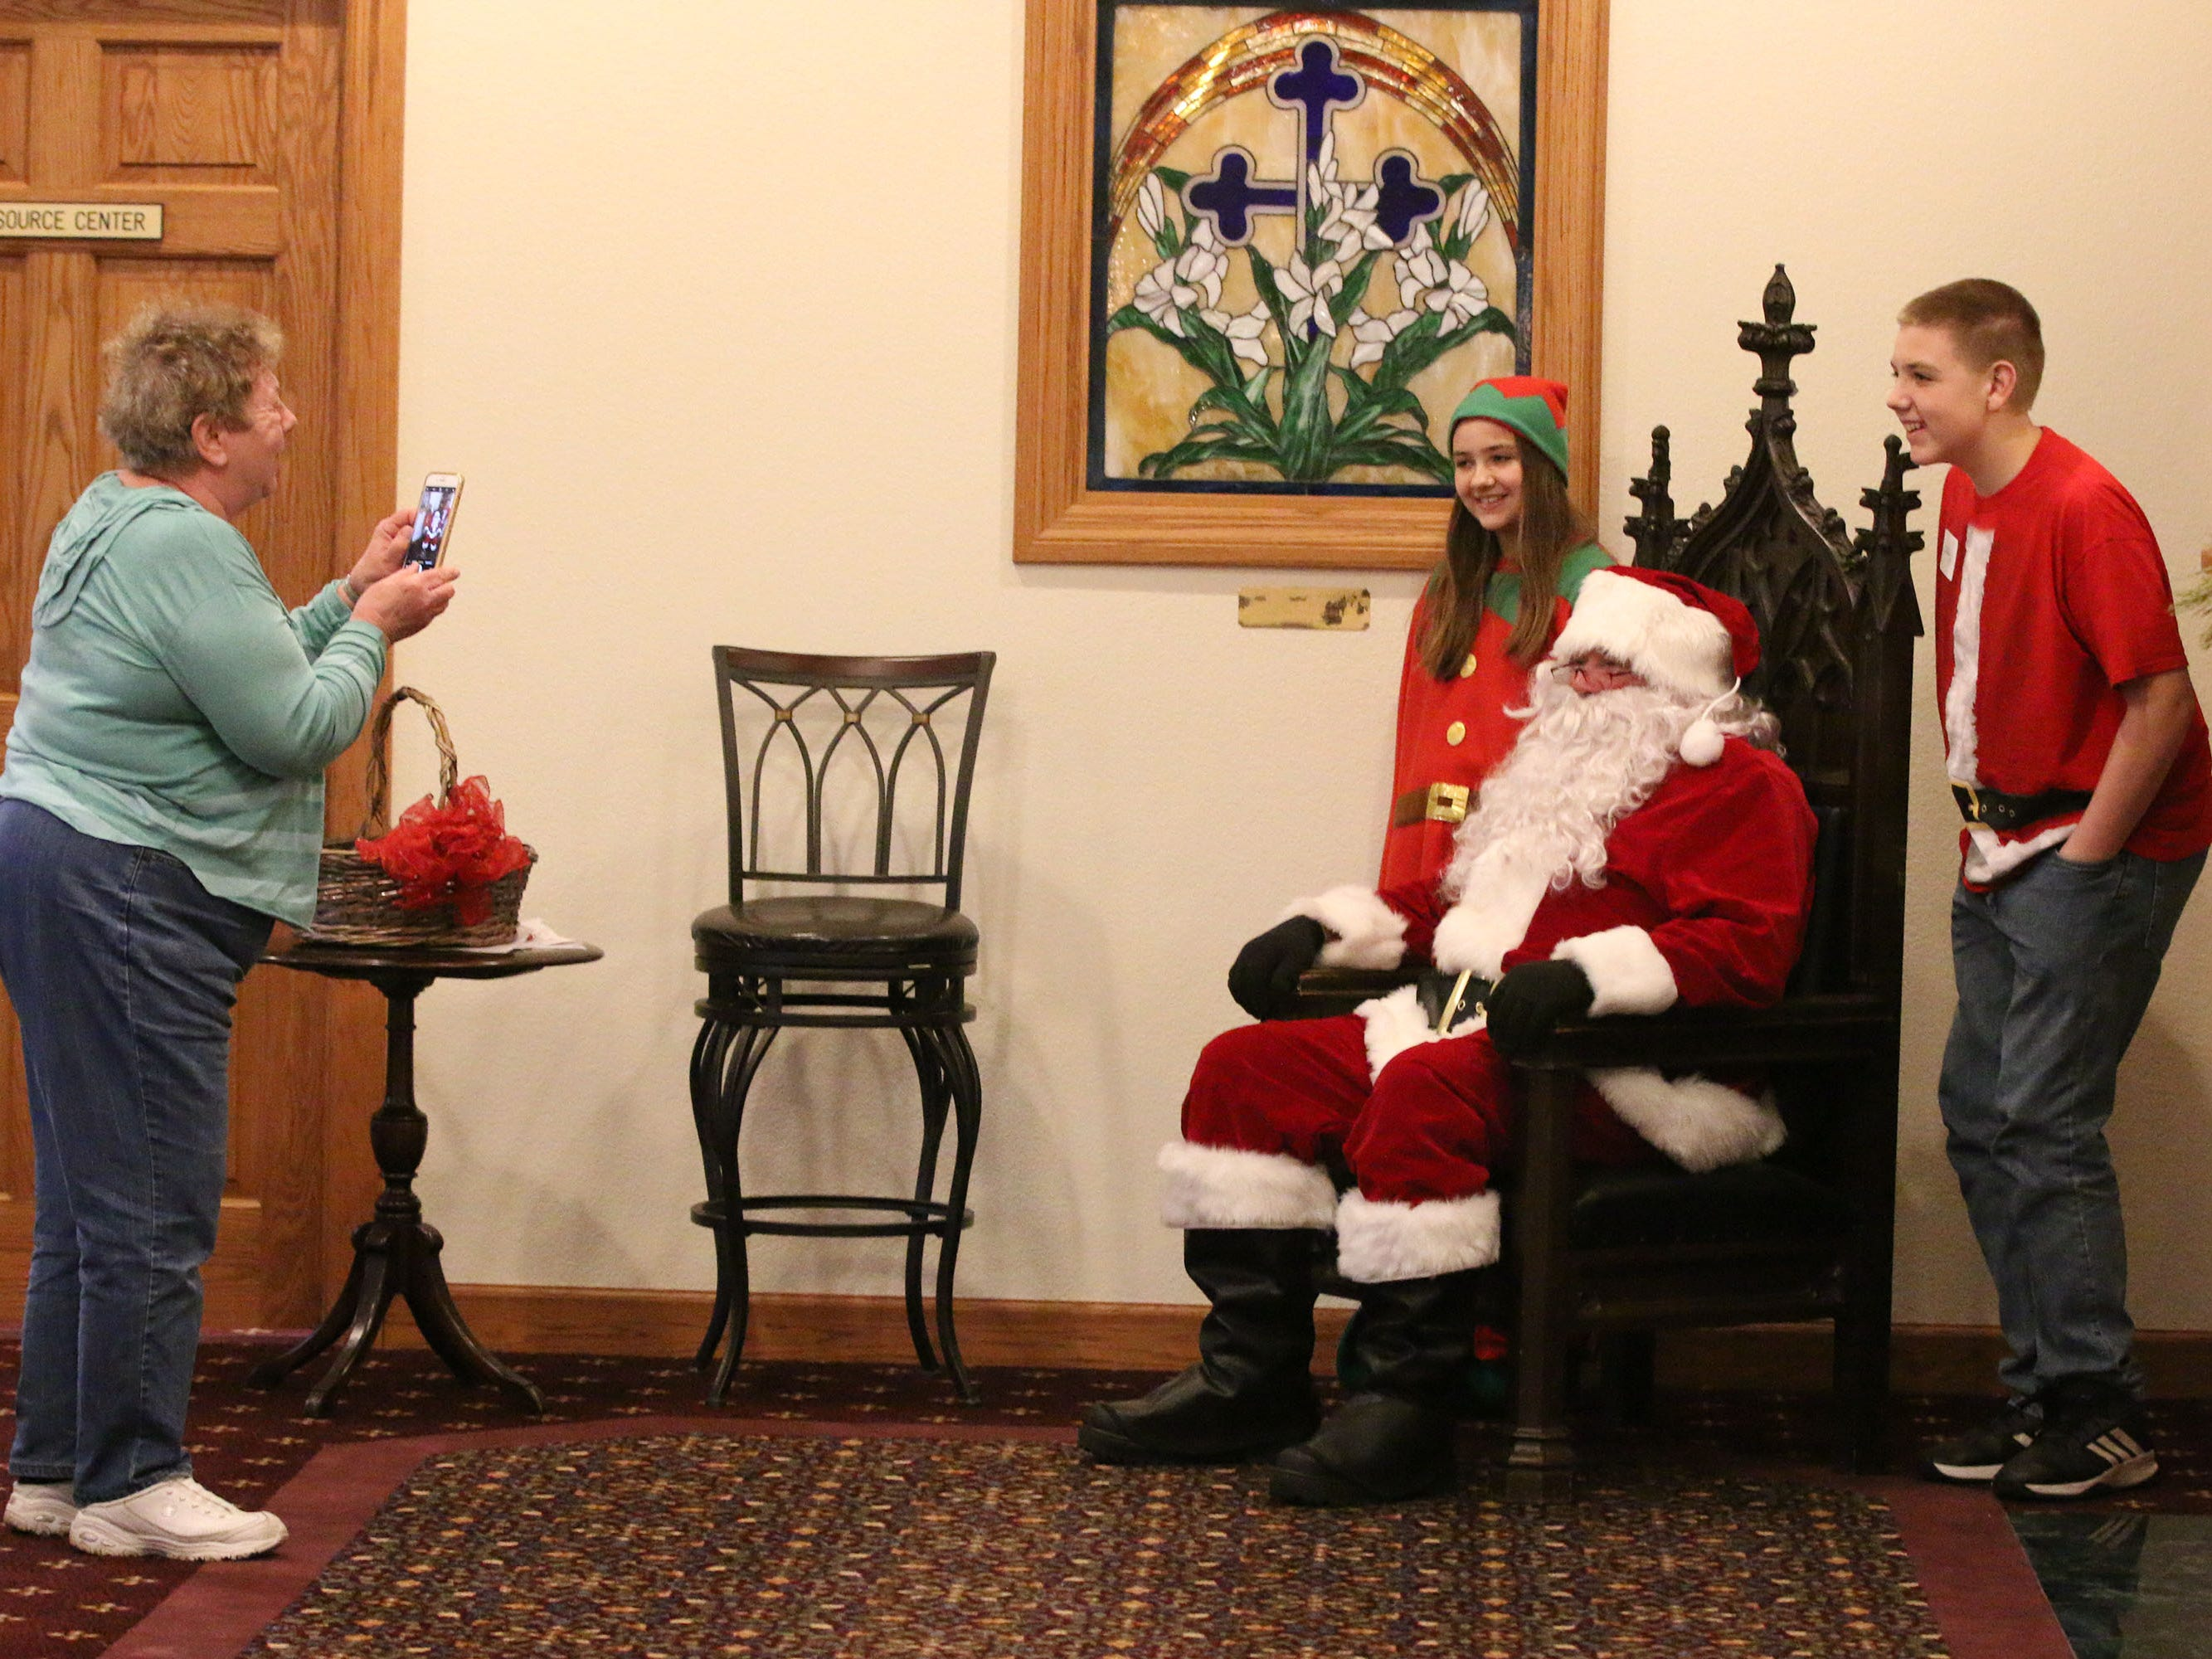 Carol Beyer of Sheboygan, left, snaps a photo of Victoria Perl 11, and her brother Bobby, 13, with Santa during Cookies with Santa at Zimmer Westview Funeral and Cremation Care Center Saturday, December 1, 2018, in Howards Grove, Wis.  The firm plans to have Santa at Ballhorn Chapels on December 8, 2018.